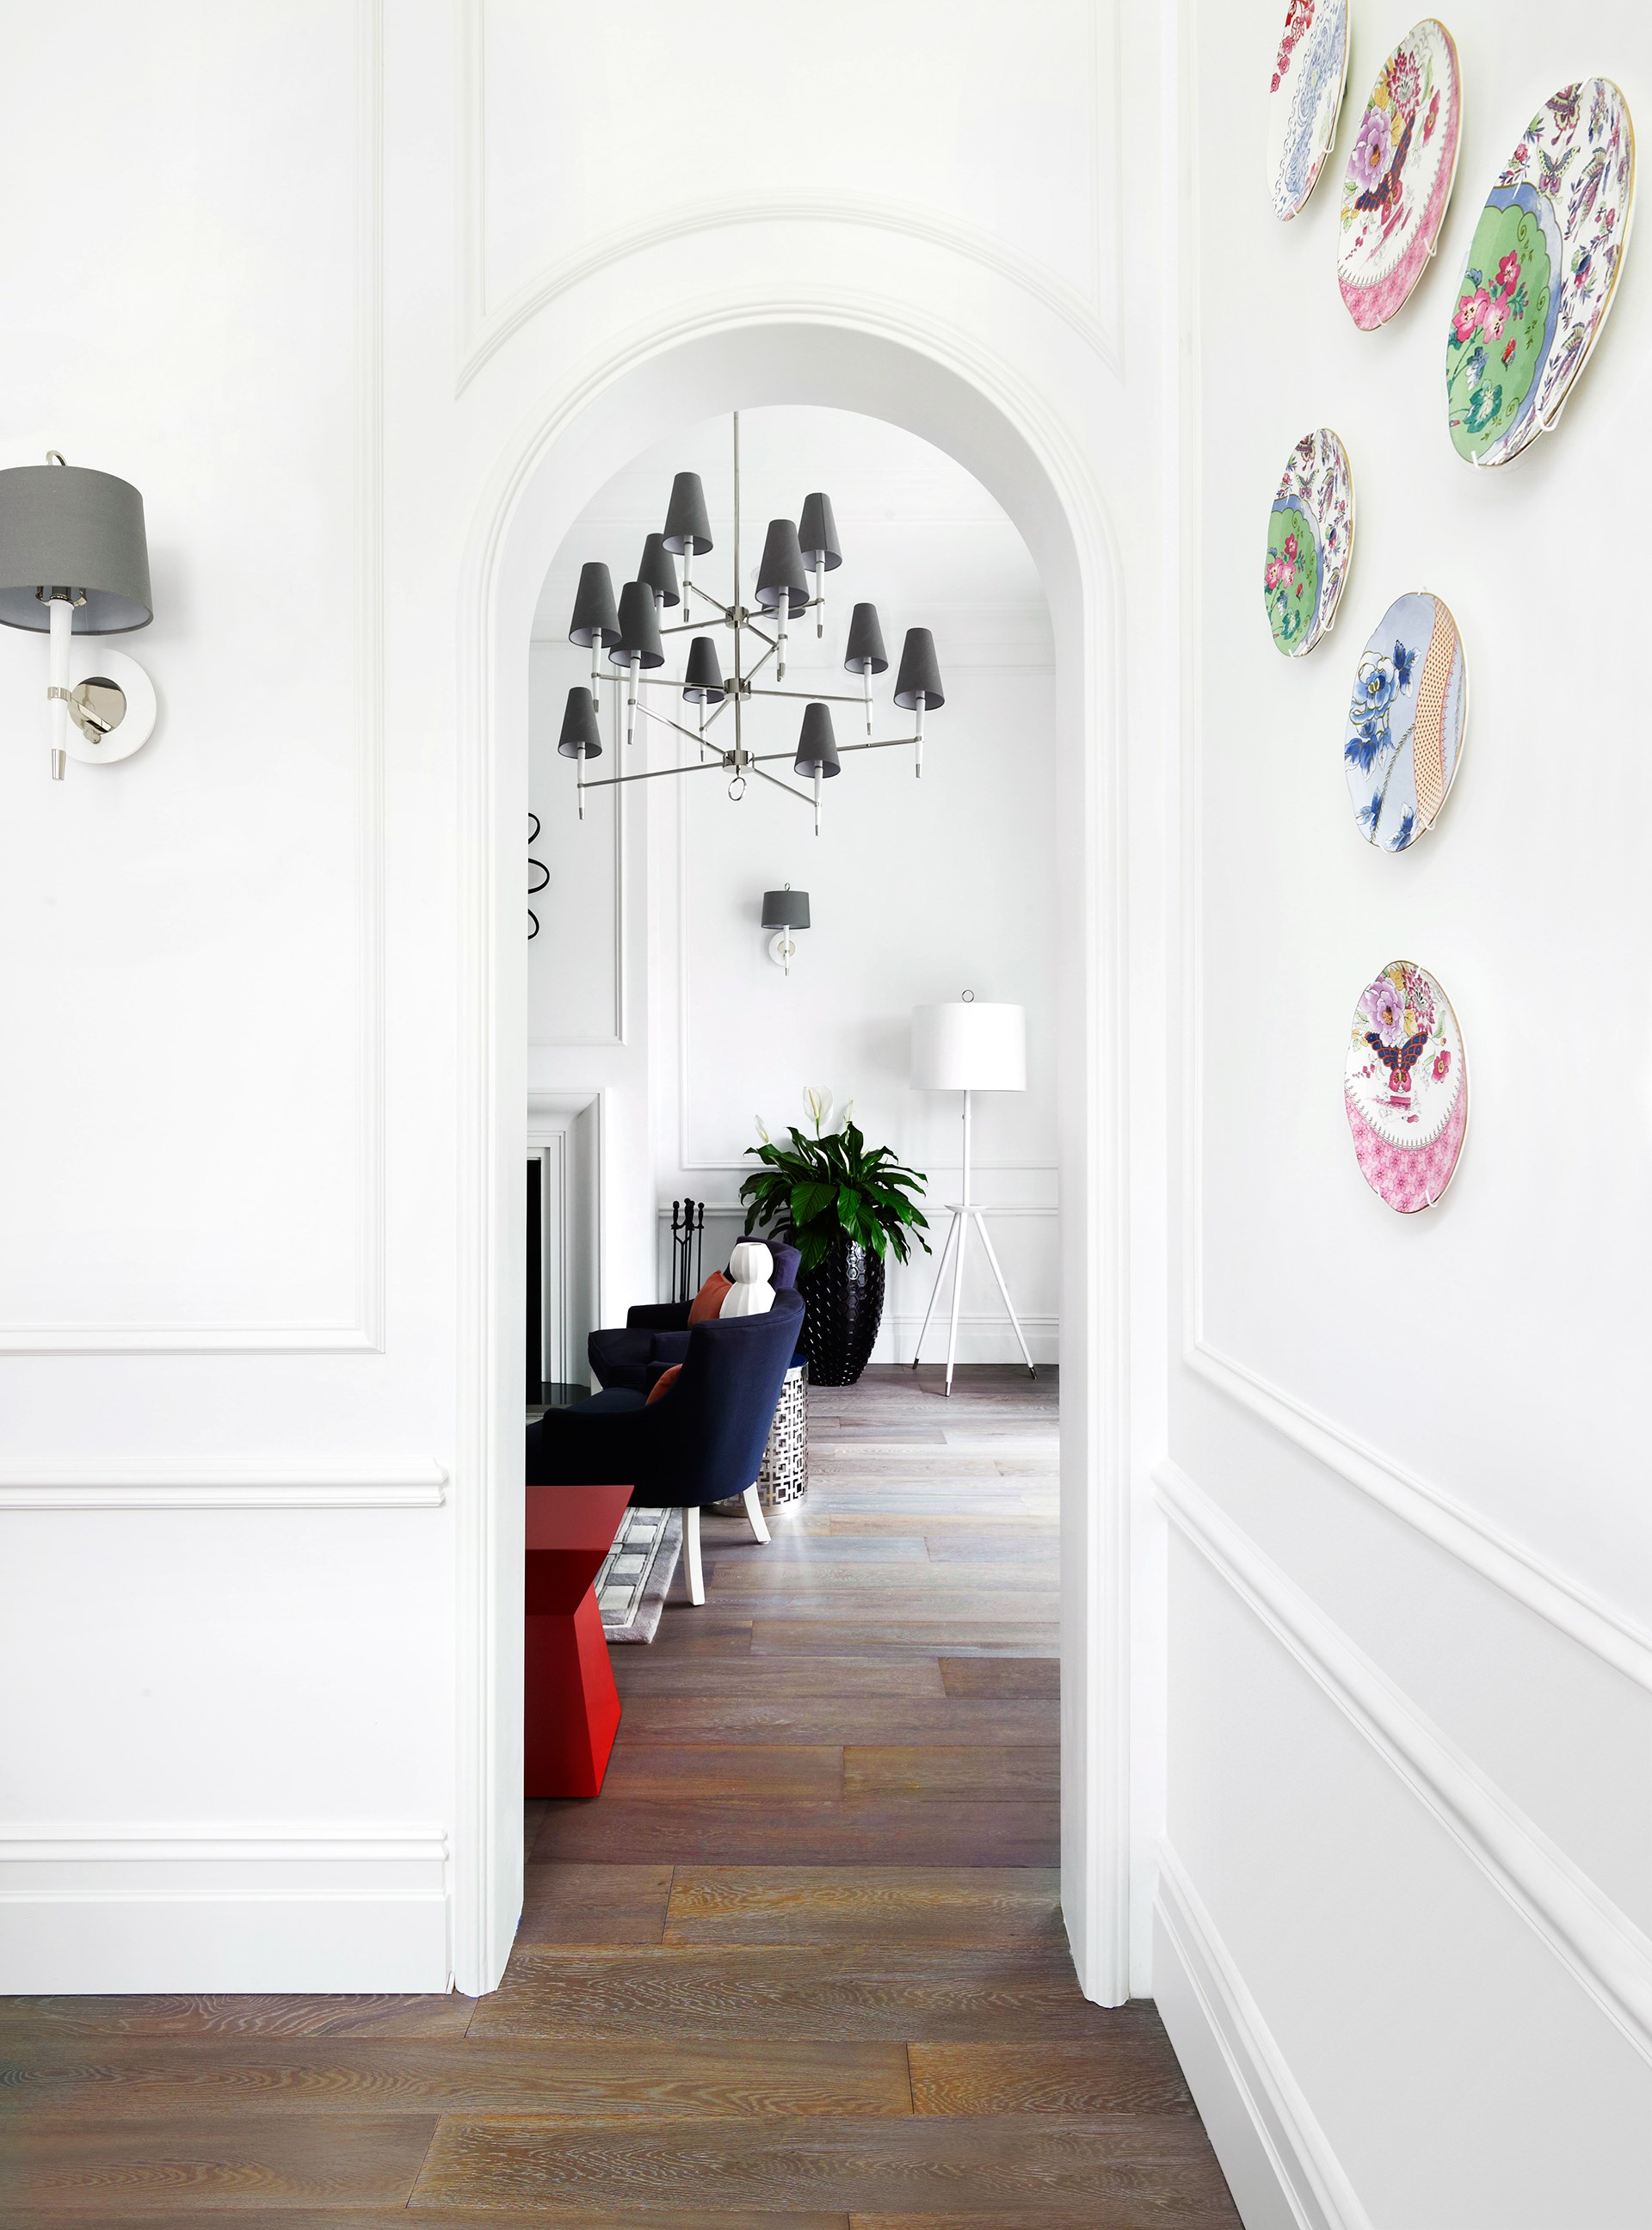 Wall mouldings lend this [luxury family home](http://www.homestolove.com.au/gallery-emma-and-tonis-luxurious-regency-style-home-2311) an early 20th-century French vibe, in keeping with the owner's favourite style. *Photo: Anson Smart*